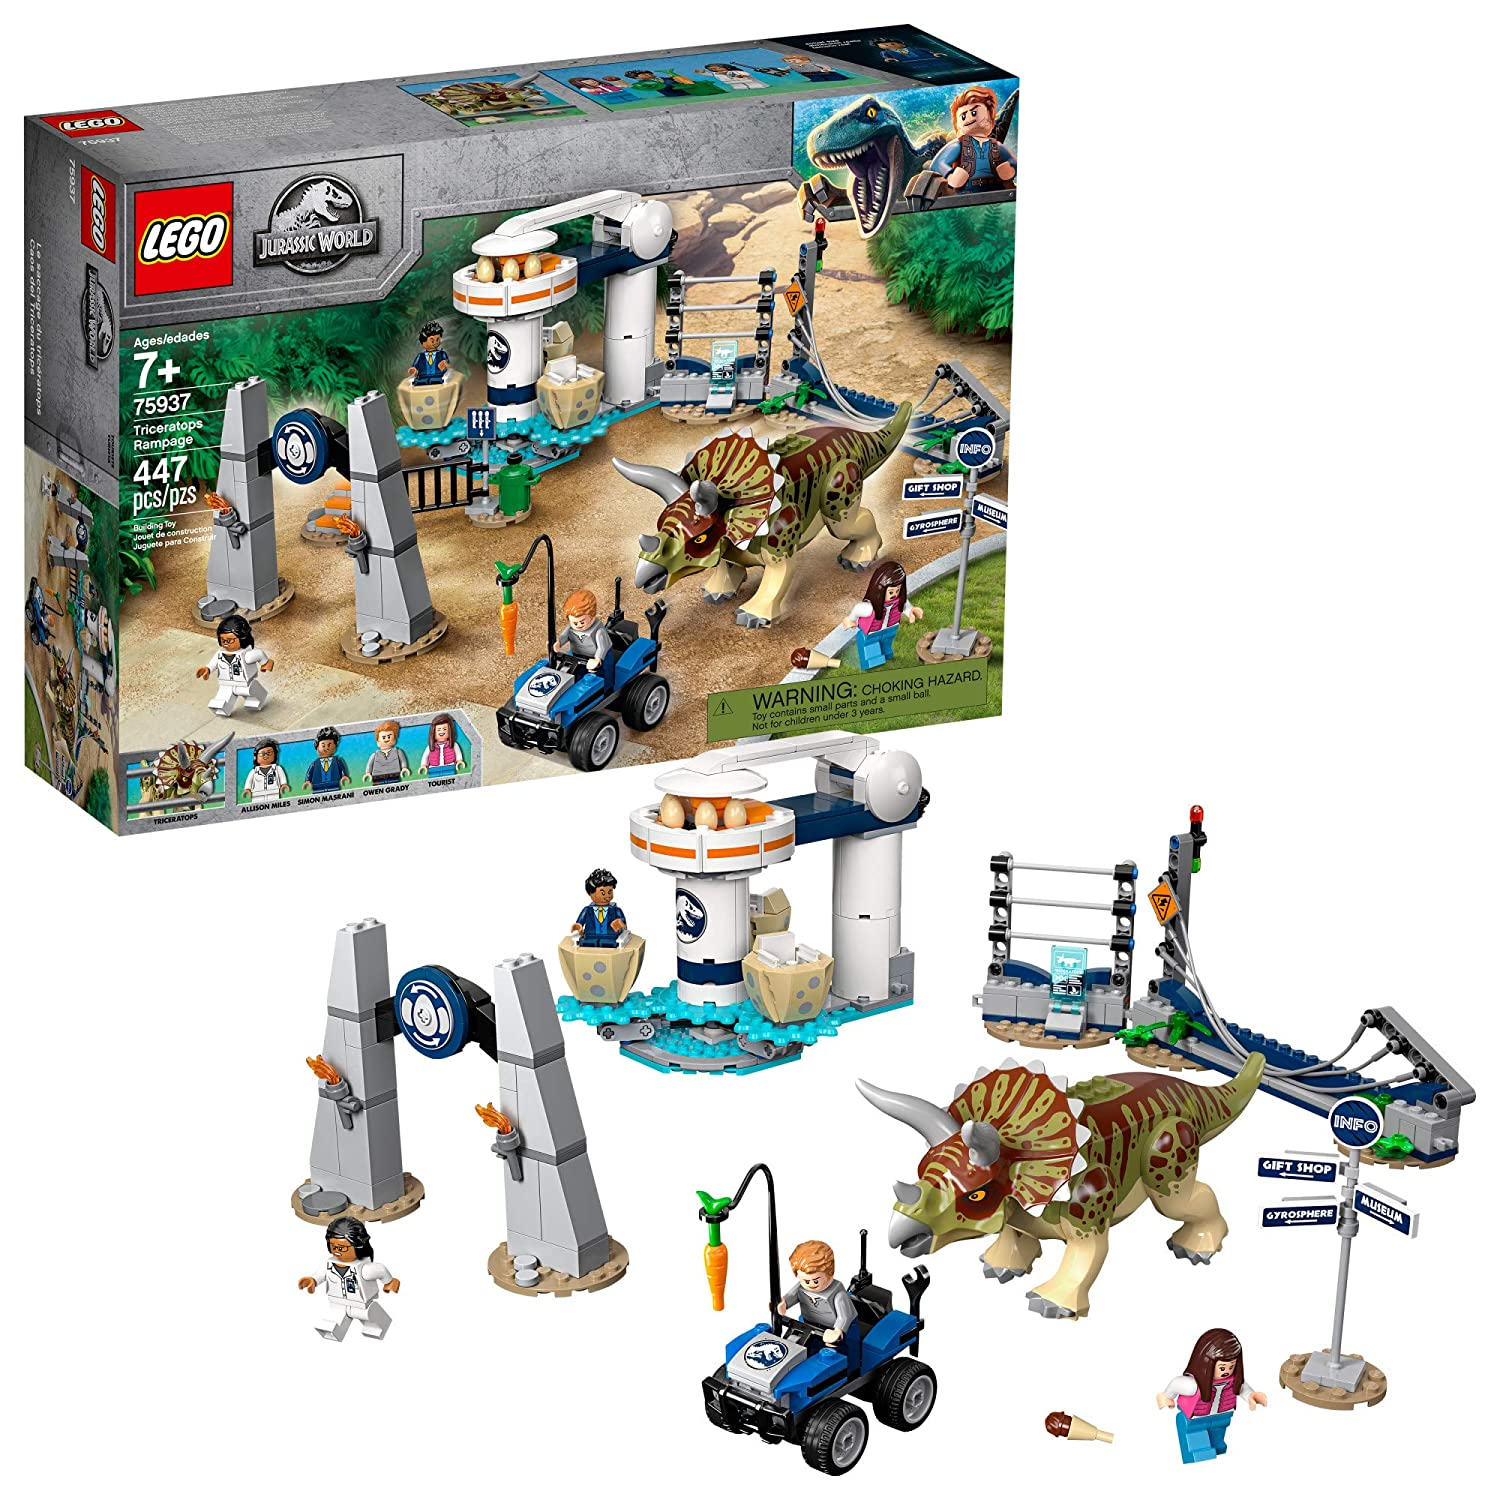 Top 9 Best Lego Jurassic Park Sets Reviews in 2020 7